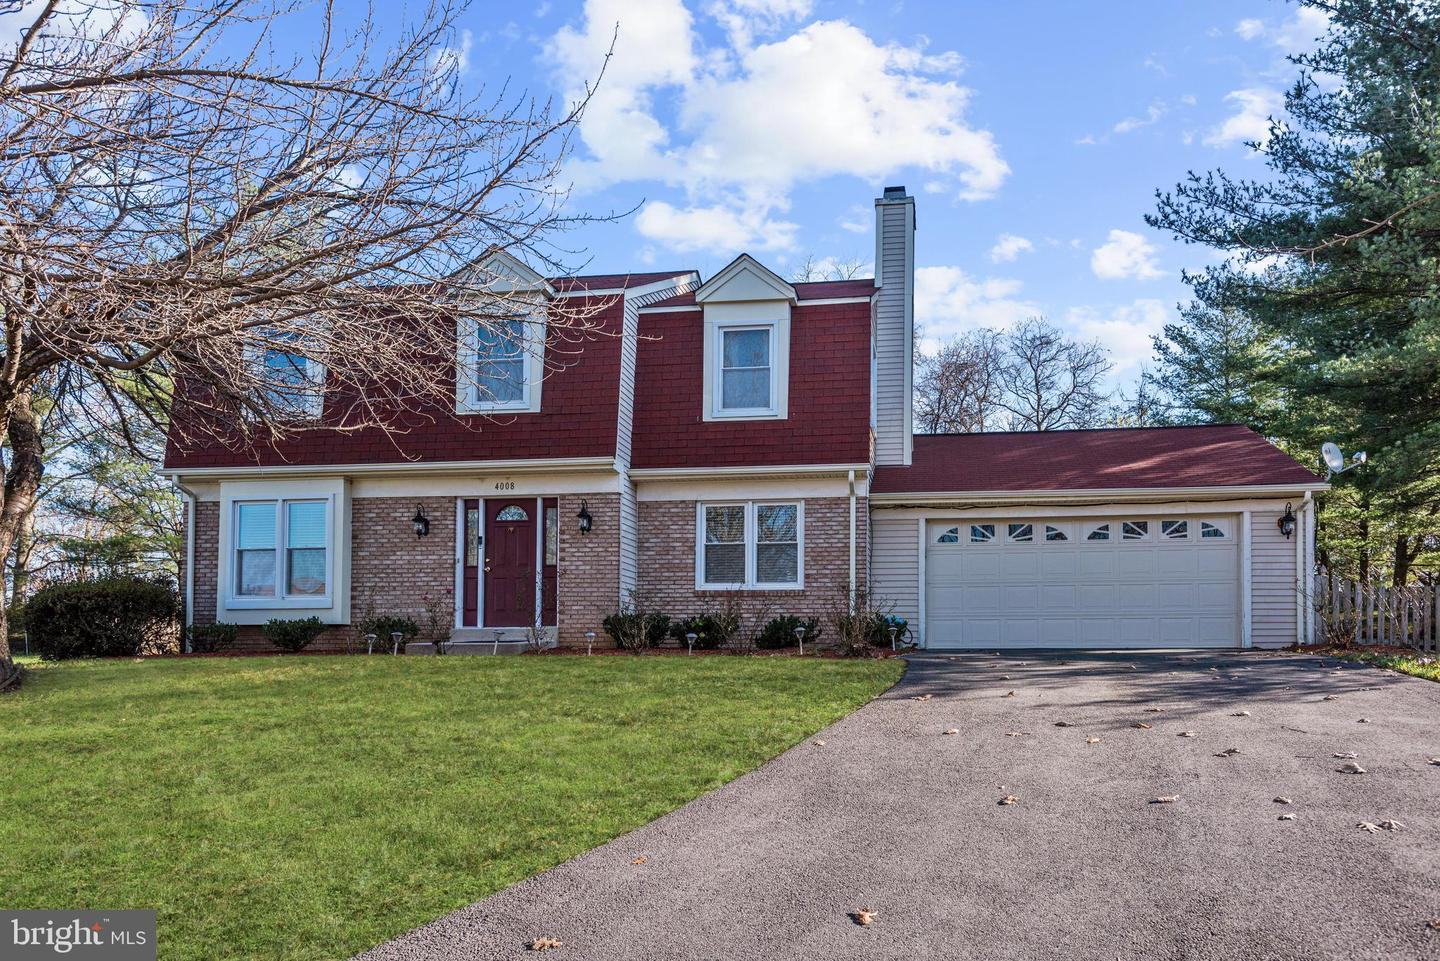 4008 HOPI CT, ELLICOTT CITY, Maryland 21043, 4 Bedrooms Bedrooms, ,4 BathroomsBathrooms,Single Family,For Sale,4008 HOPI CT,MDHW289906